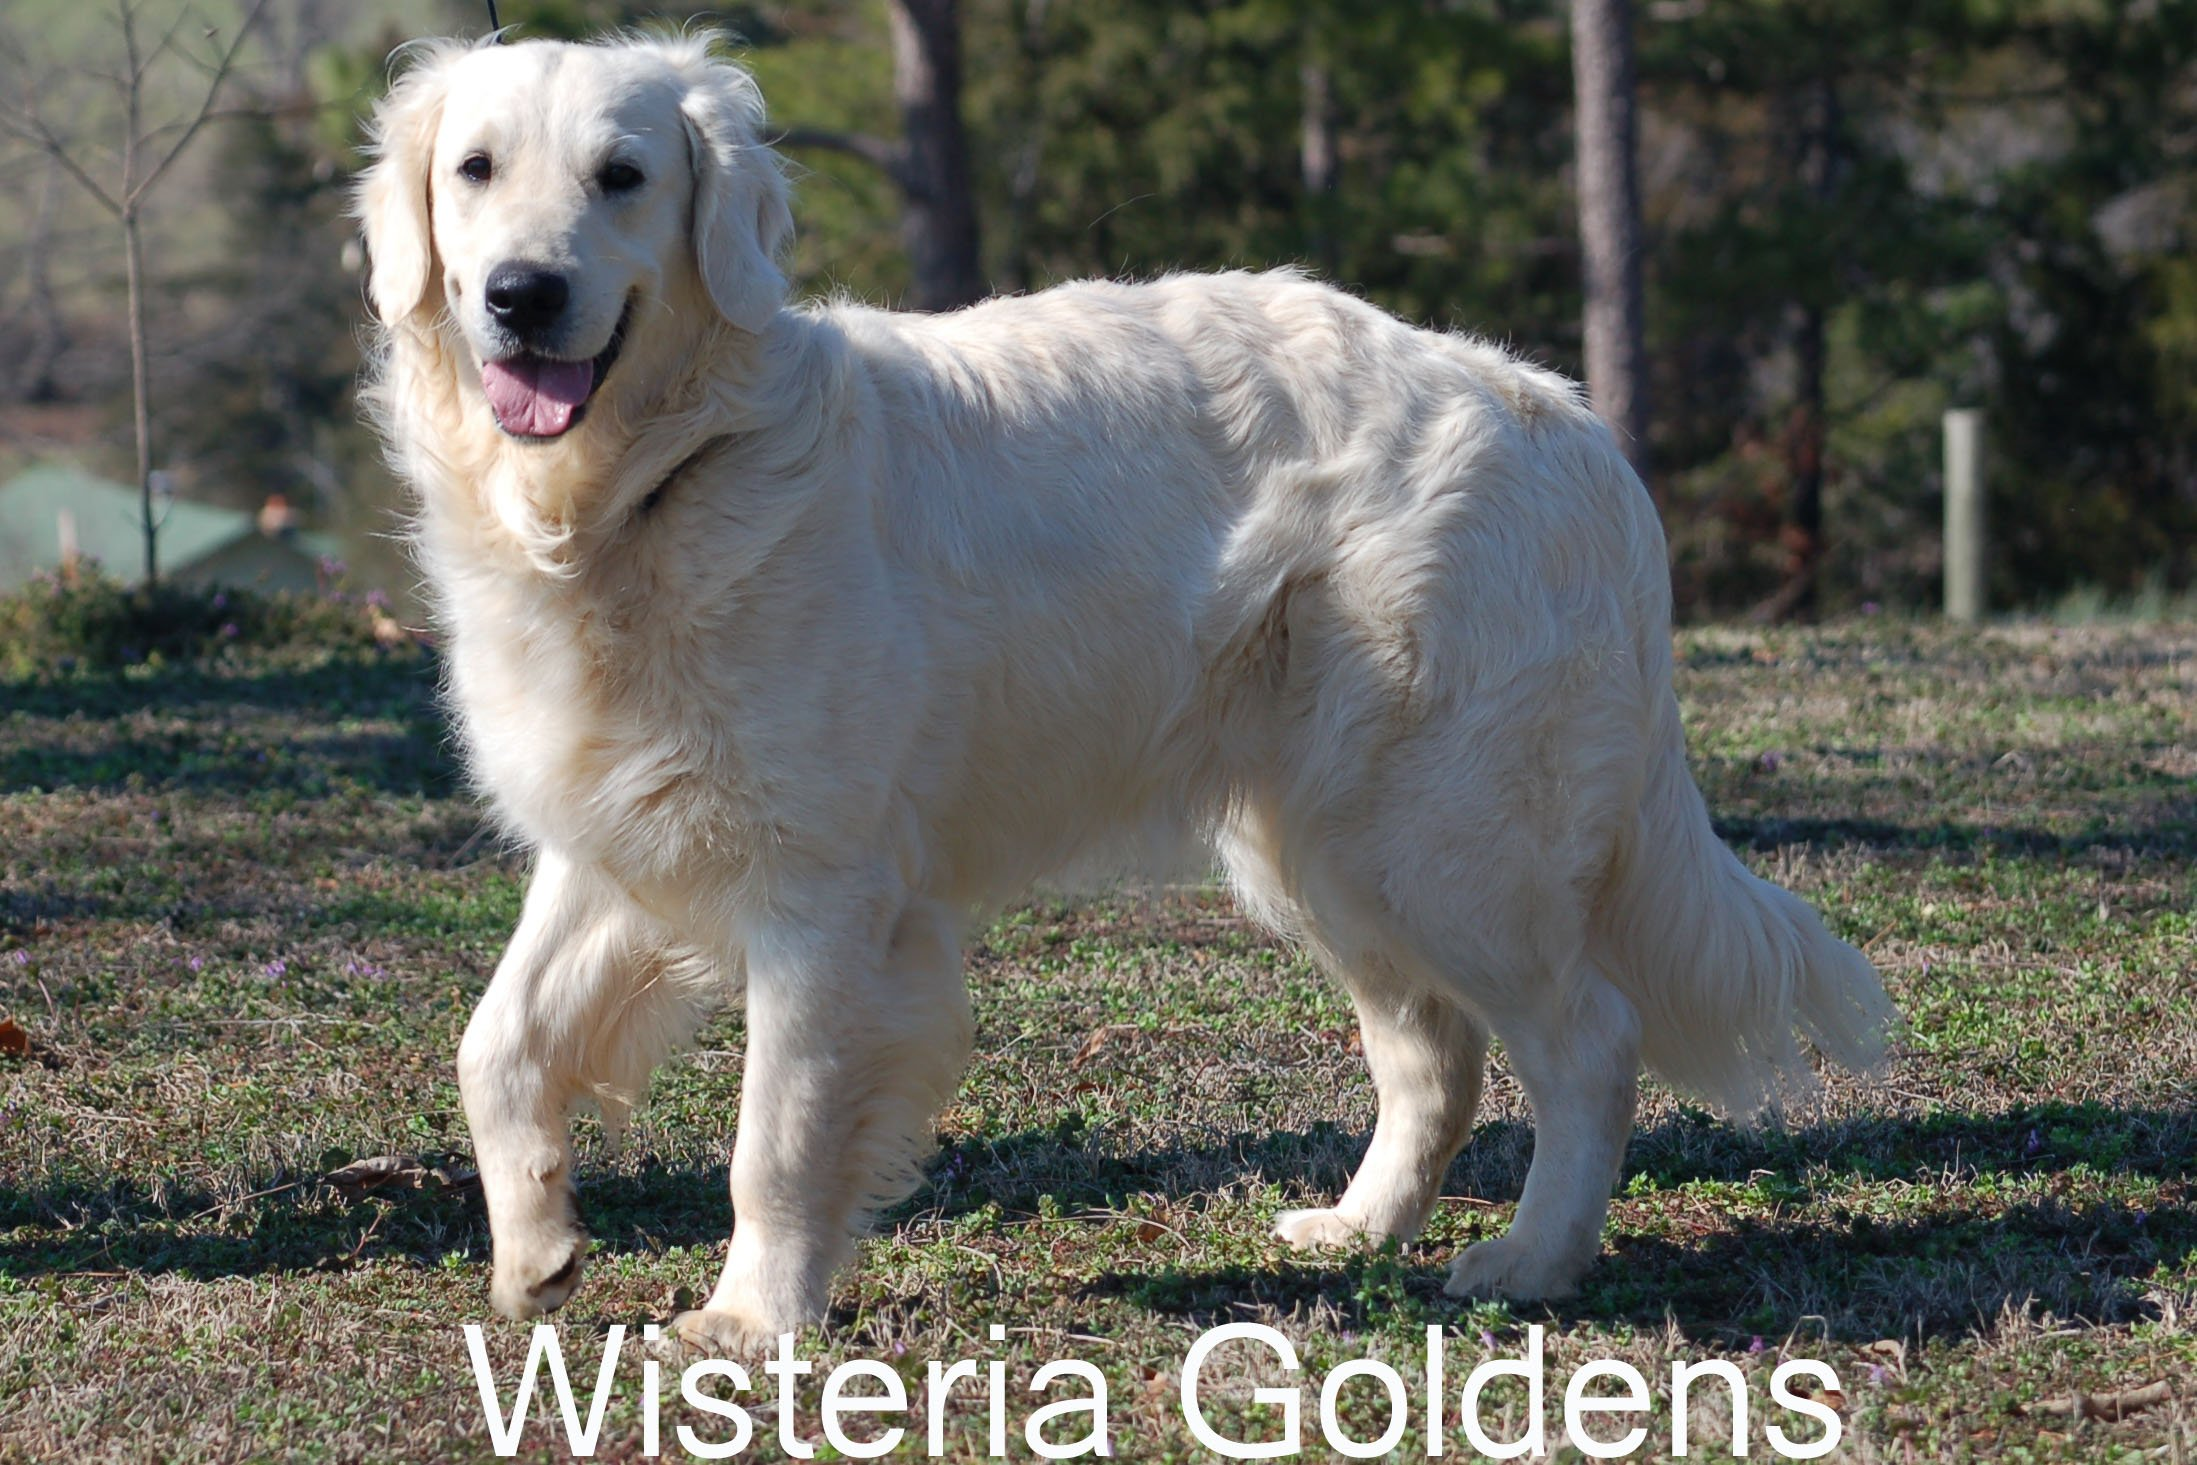 Tru_0529-Tru-full-english-cream-golden-retriever-wisteria-goldens.JPG